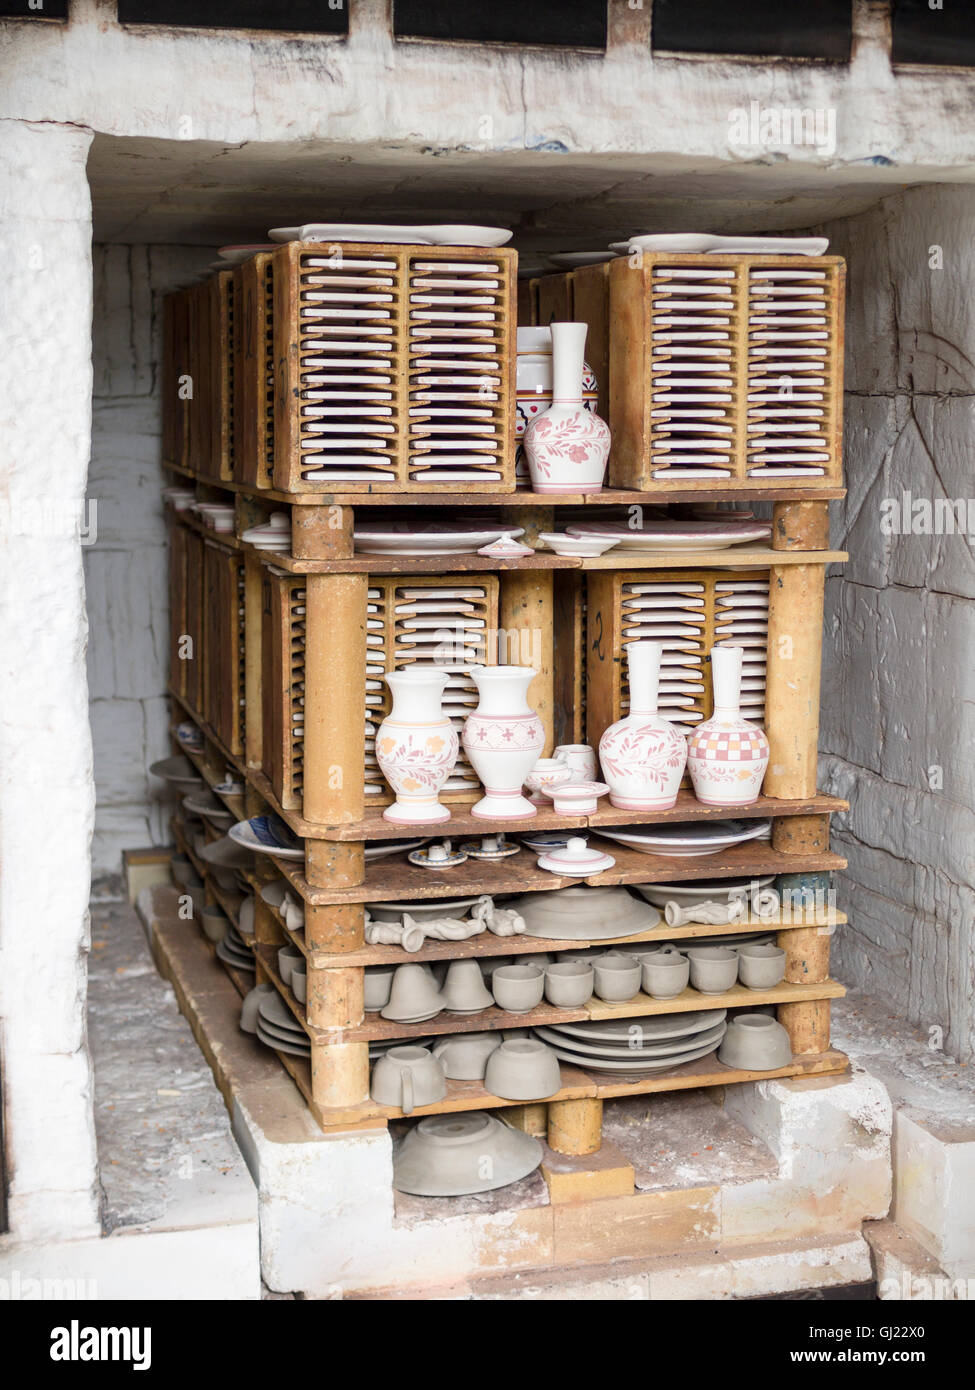 Pottery Ready for Firing. A batch of pottery stacked inside a large furnace ready to be glazed at Ceramic Vieira, - Stock Image